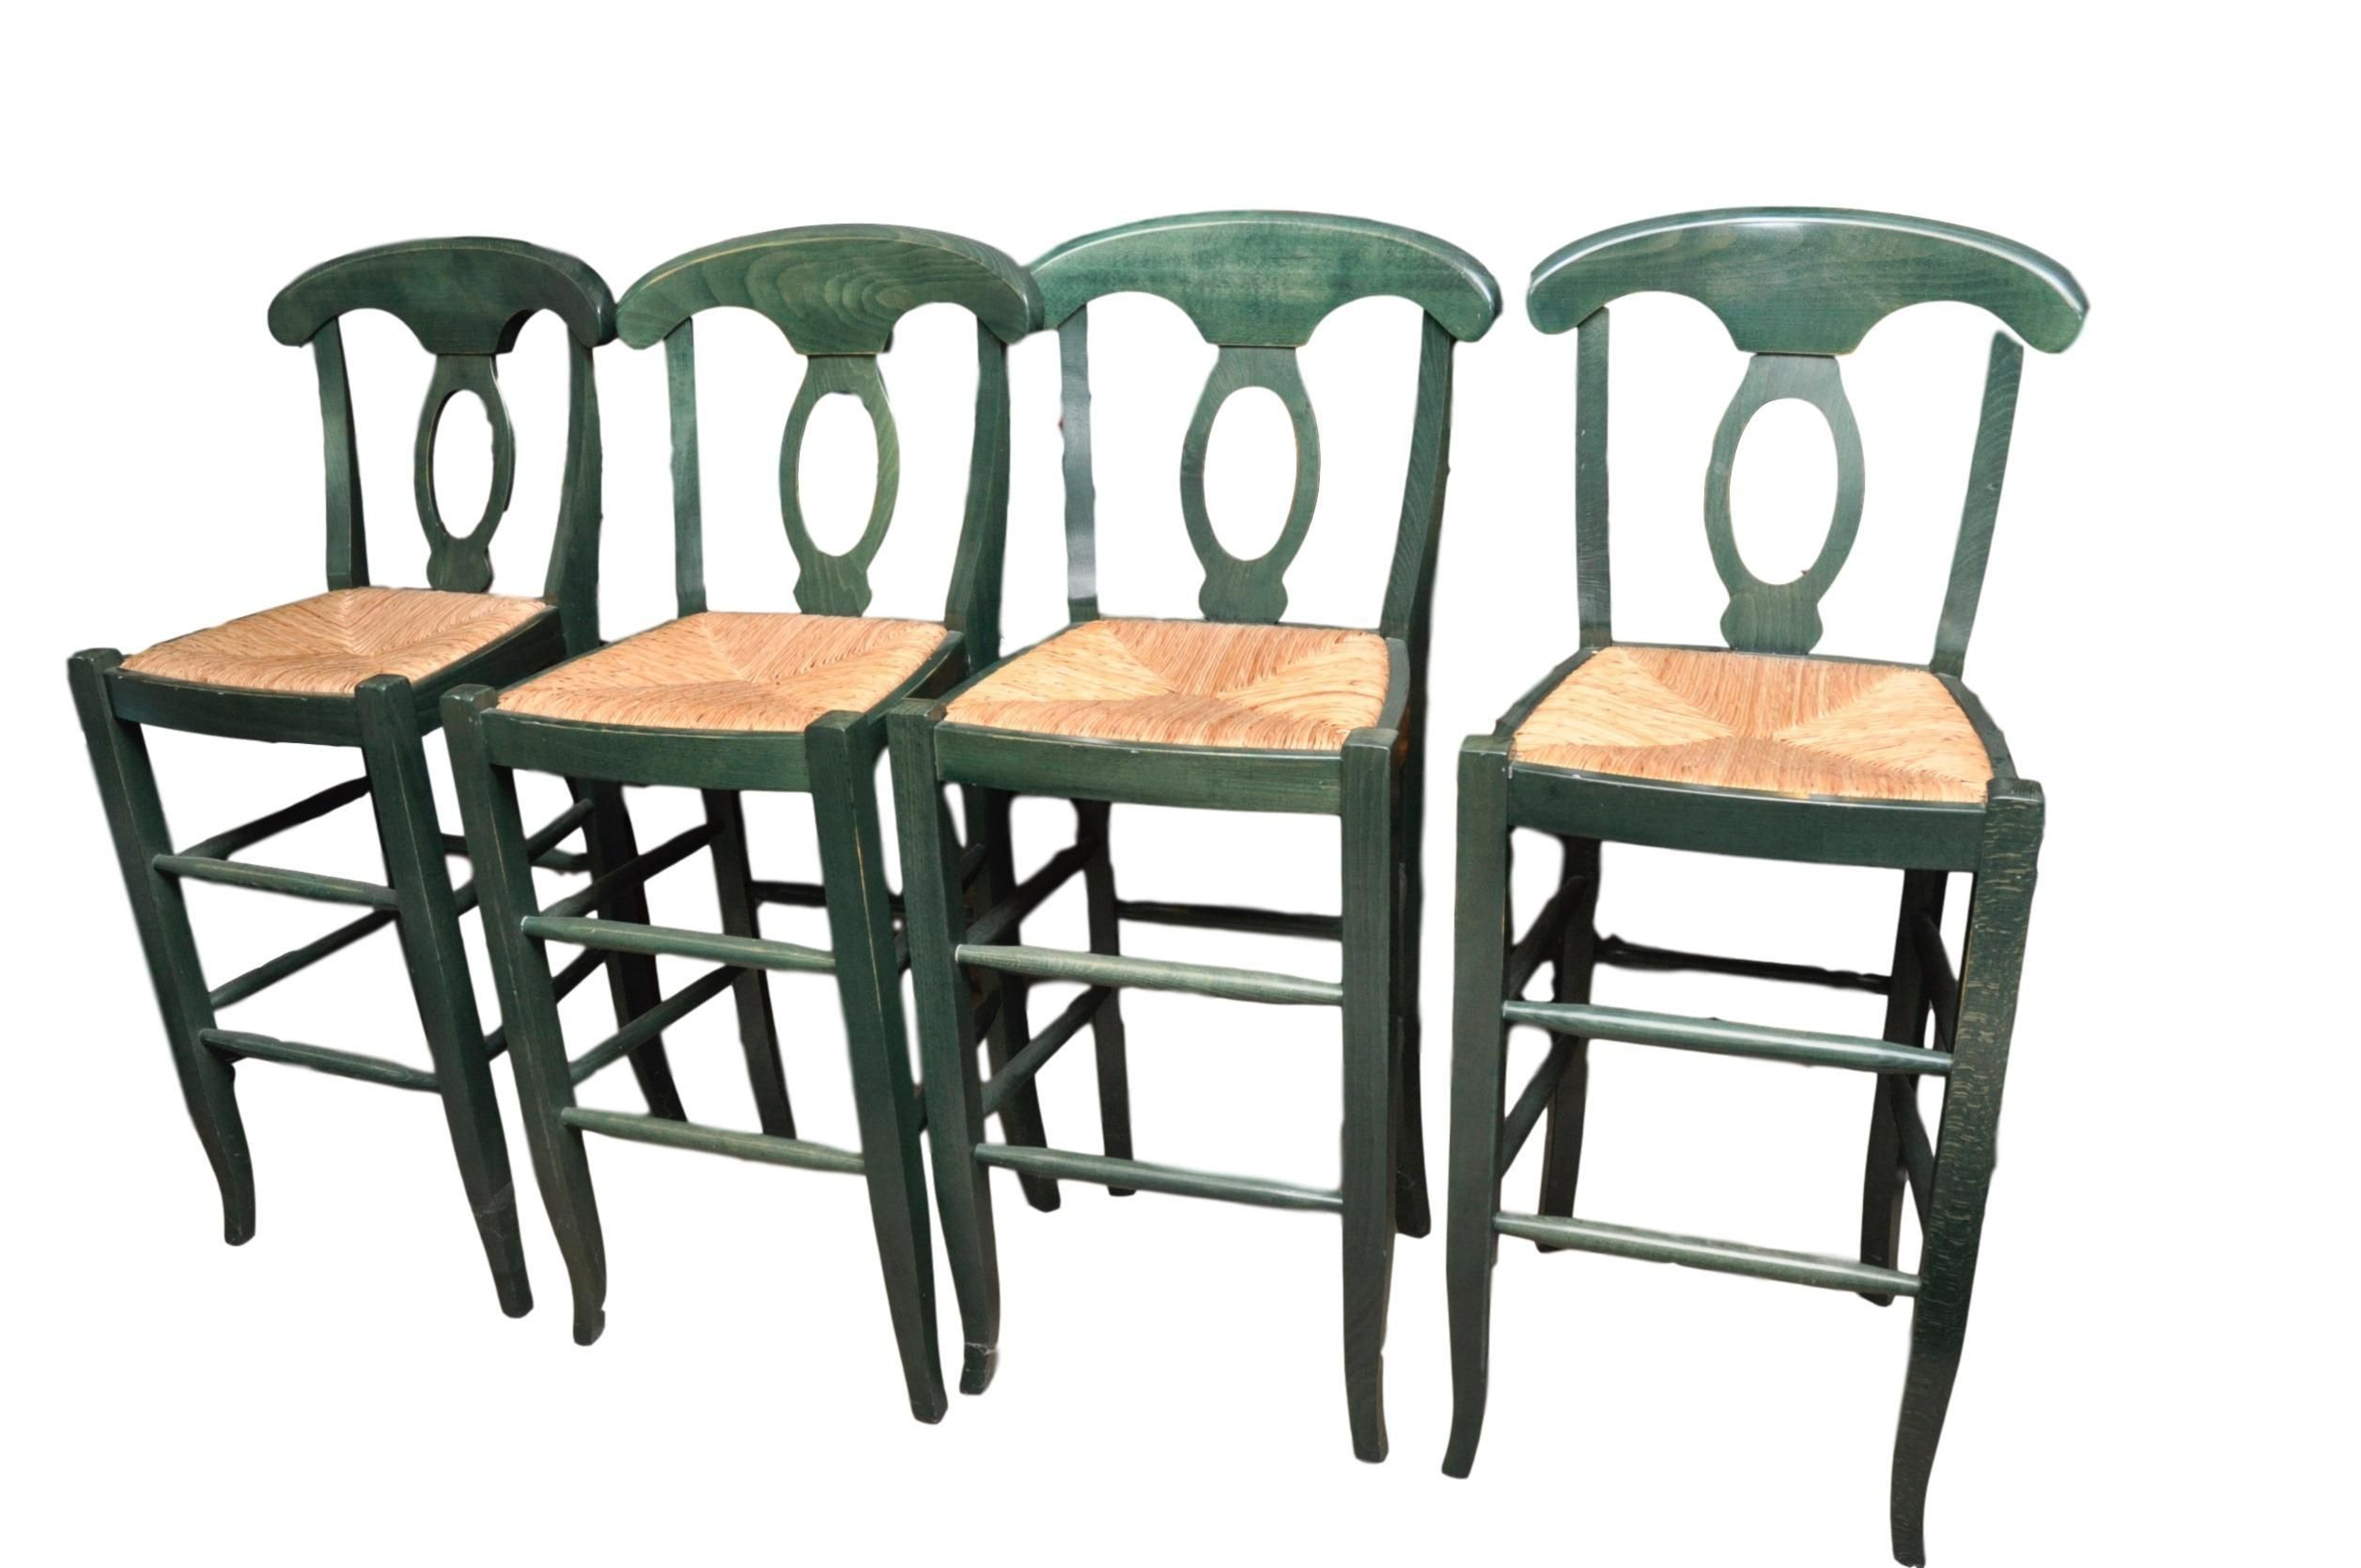 Wondrous Set Of Four Bar Stools With Rush Seats And Green Country Pdpeps Interior Chair Design Pdpepsorg